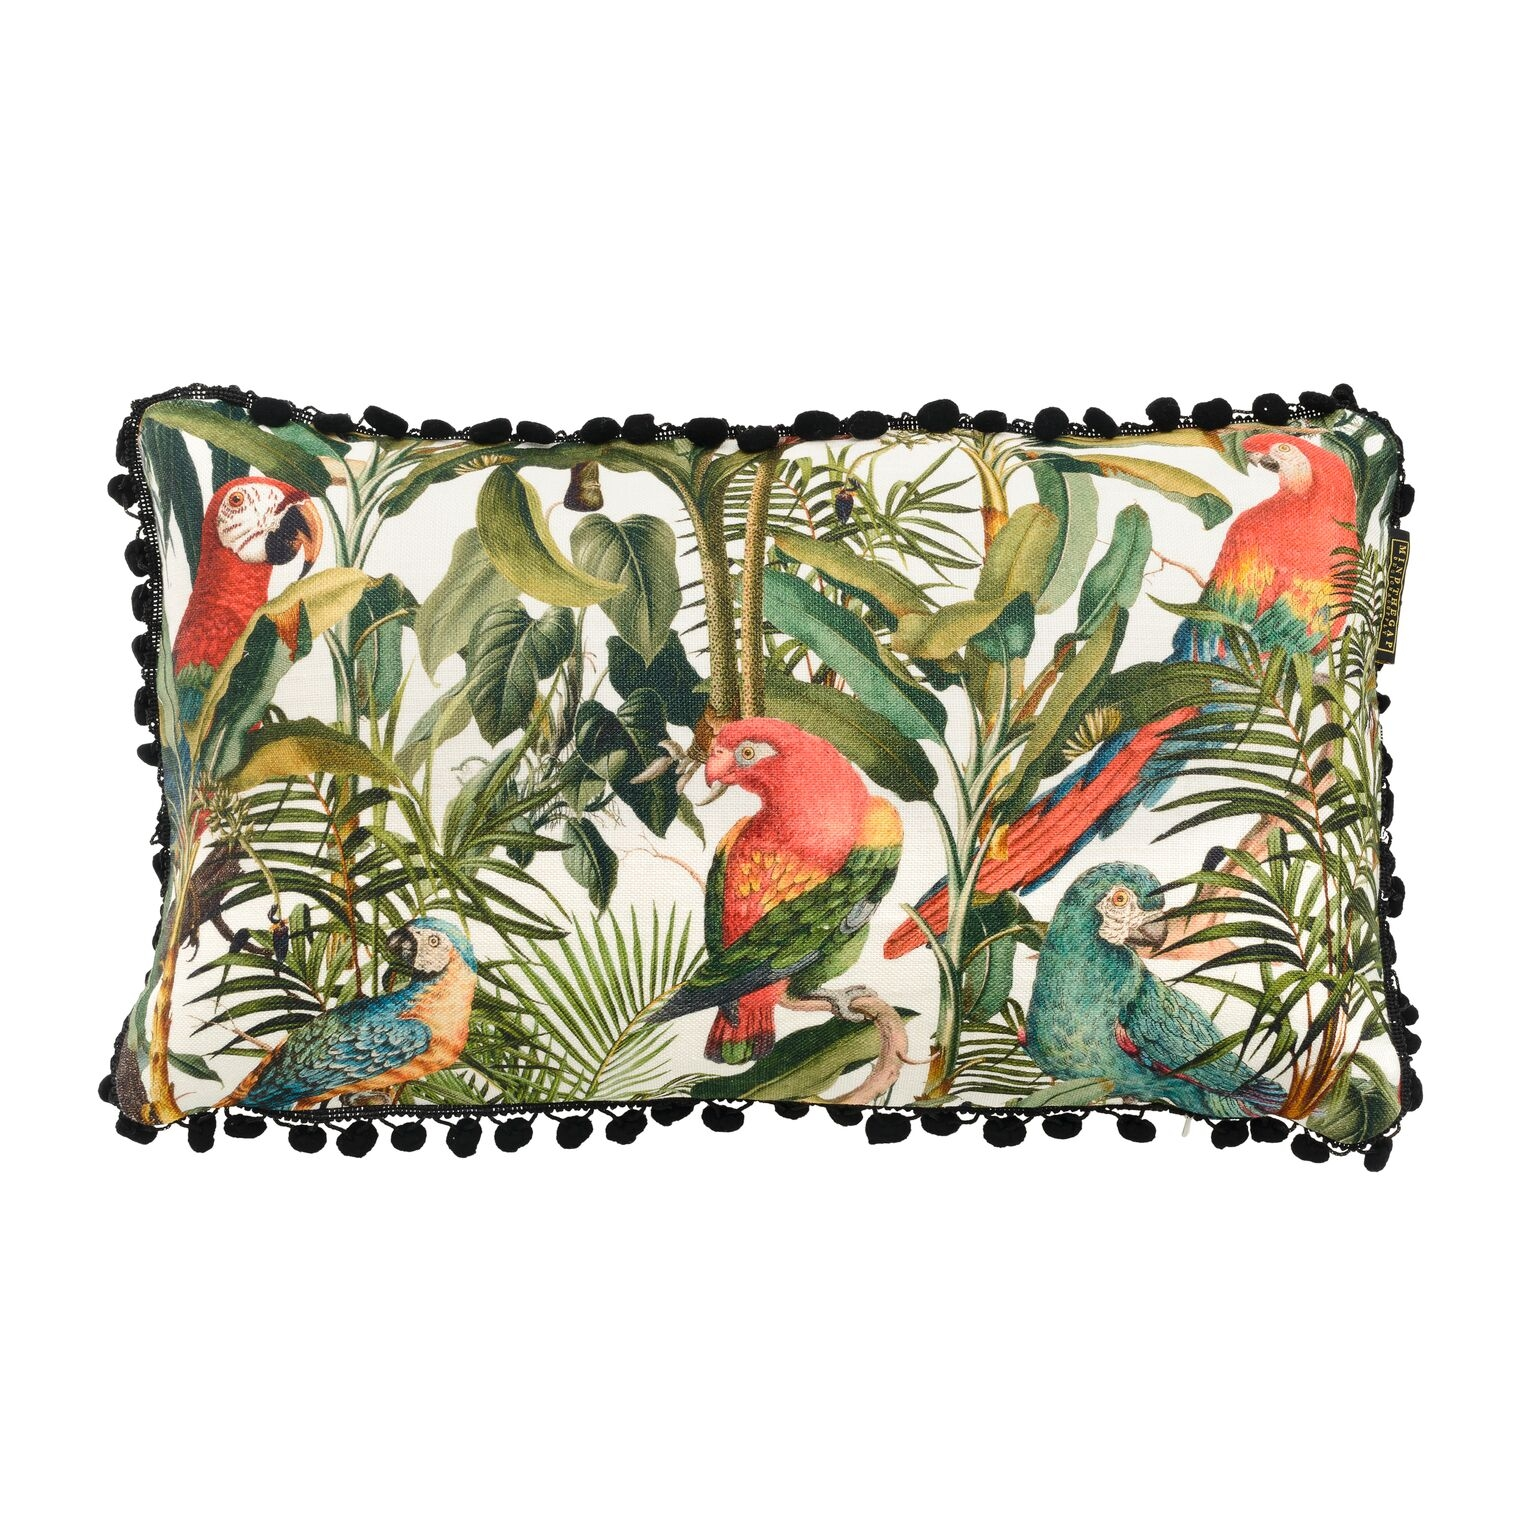 Perna decorativa Parrots of Brasil Multicolour, L50xl30 cm imagine